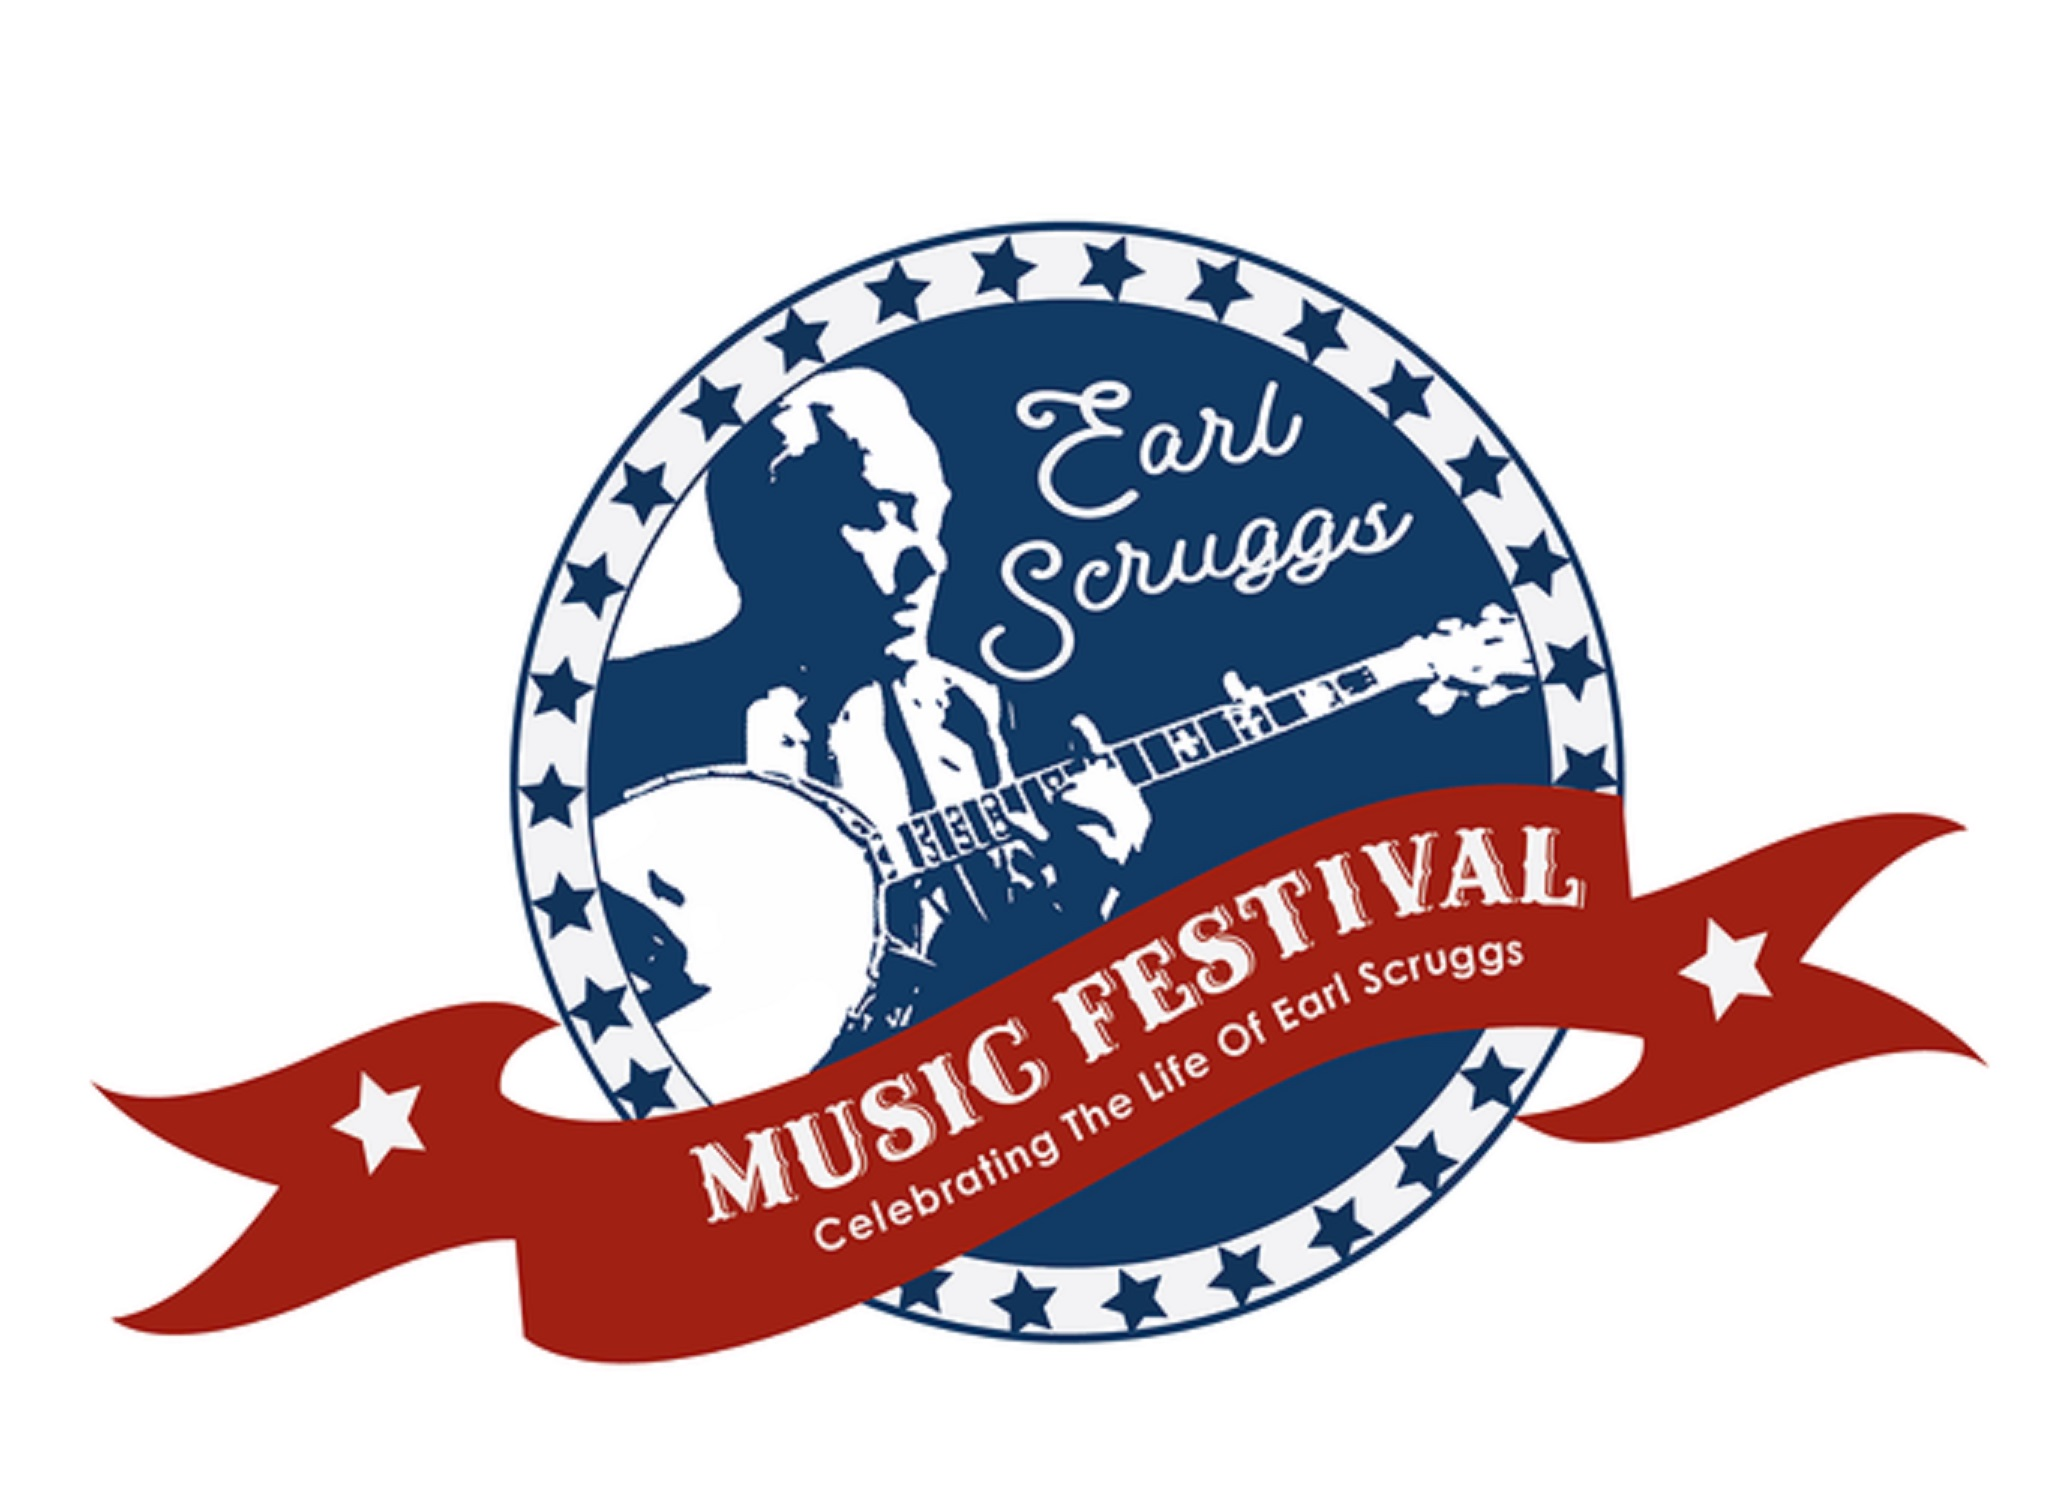 Earl Scruggs Music Festival Rescheduled to 2022